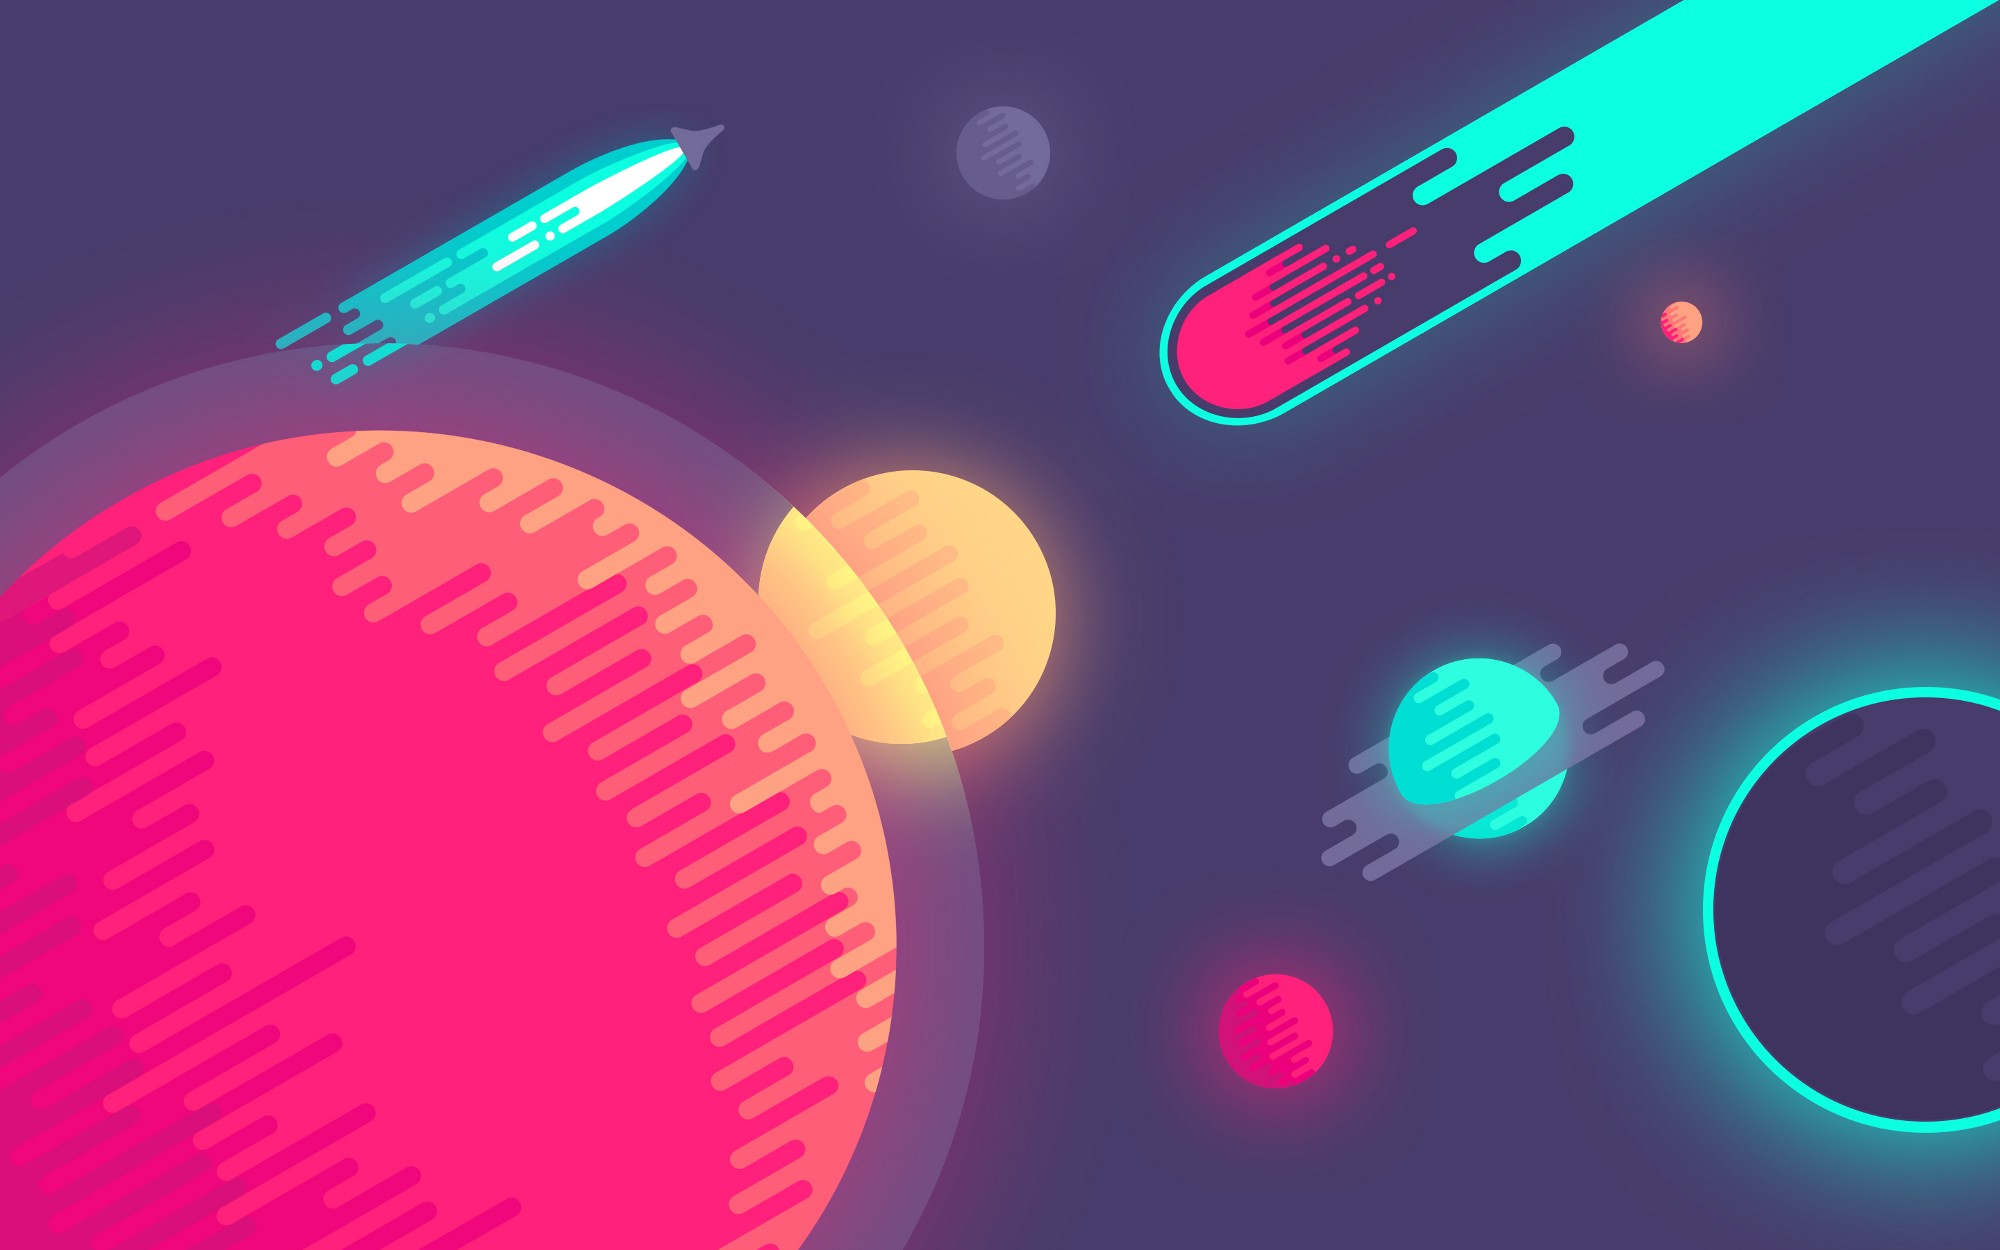 About That Space Illustration You Keep Seeing Around